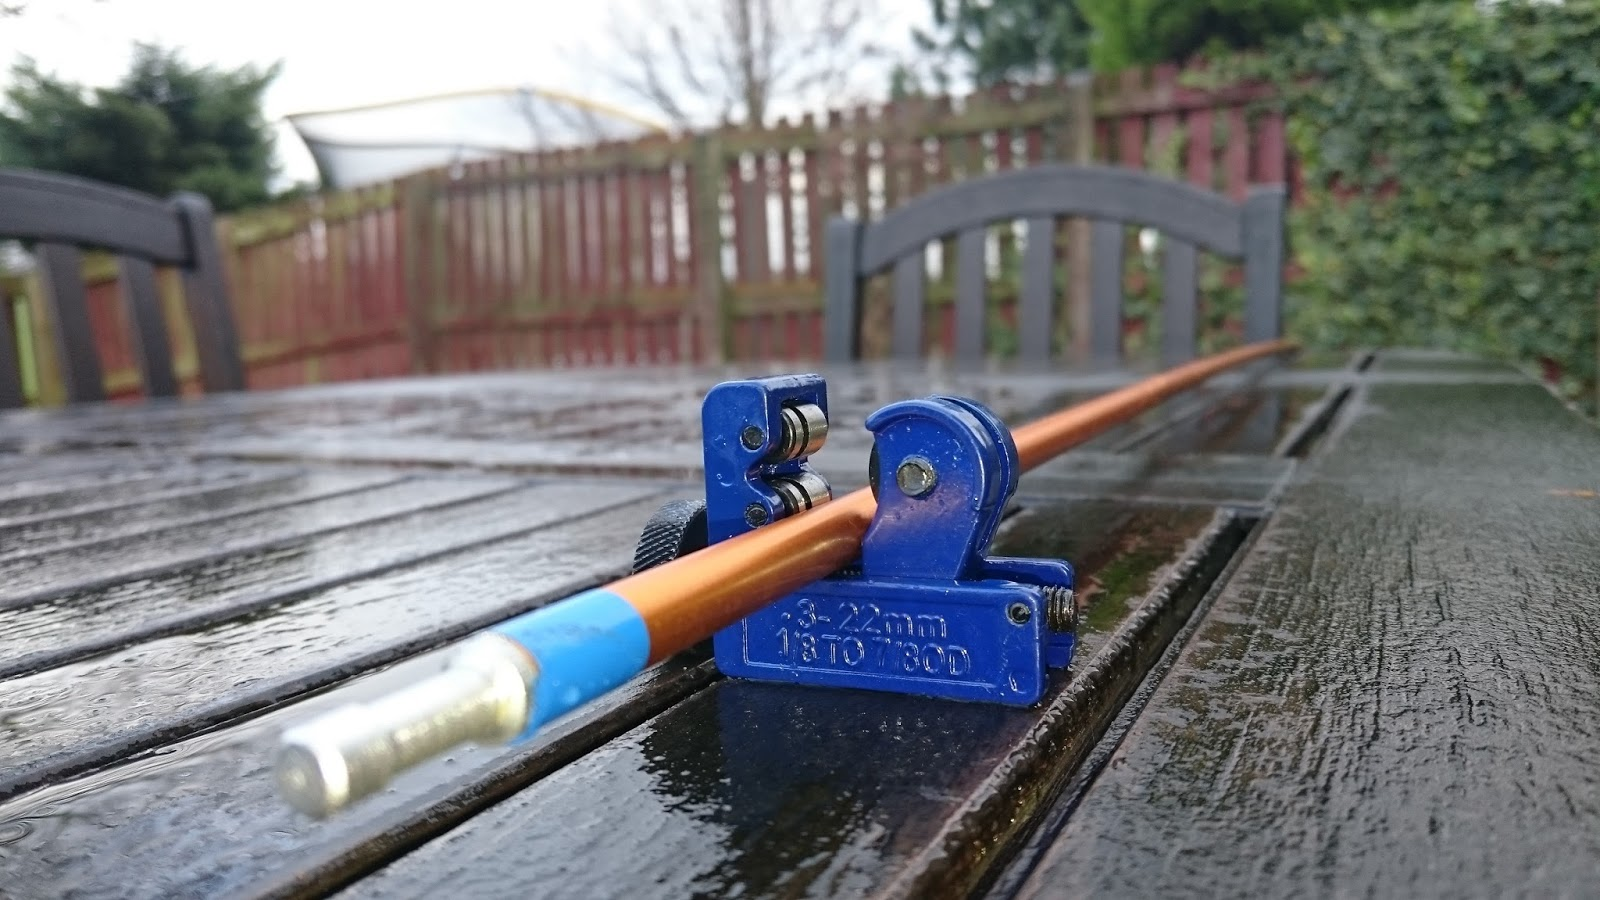 Pipe cutter & DIY tent poles | Kingdomguides blog by Murray Wilson